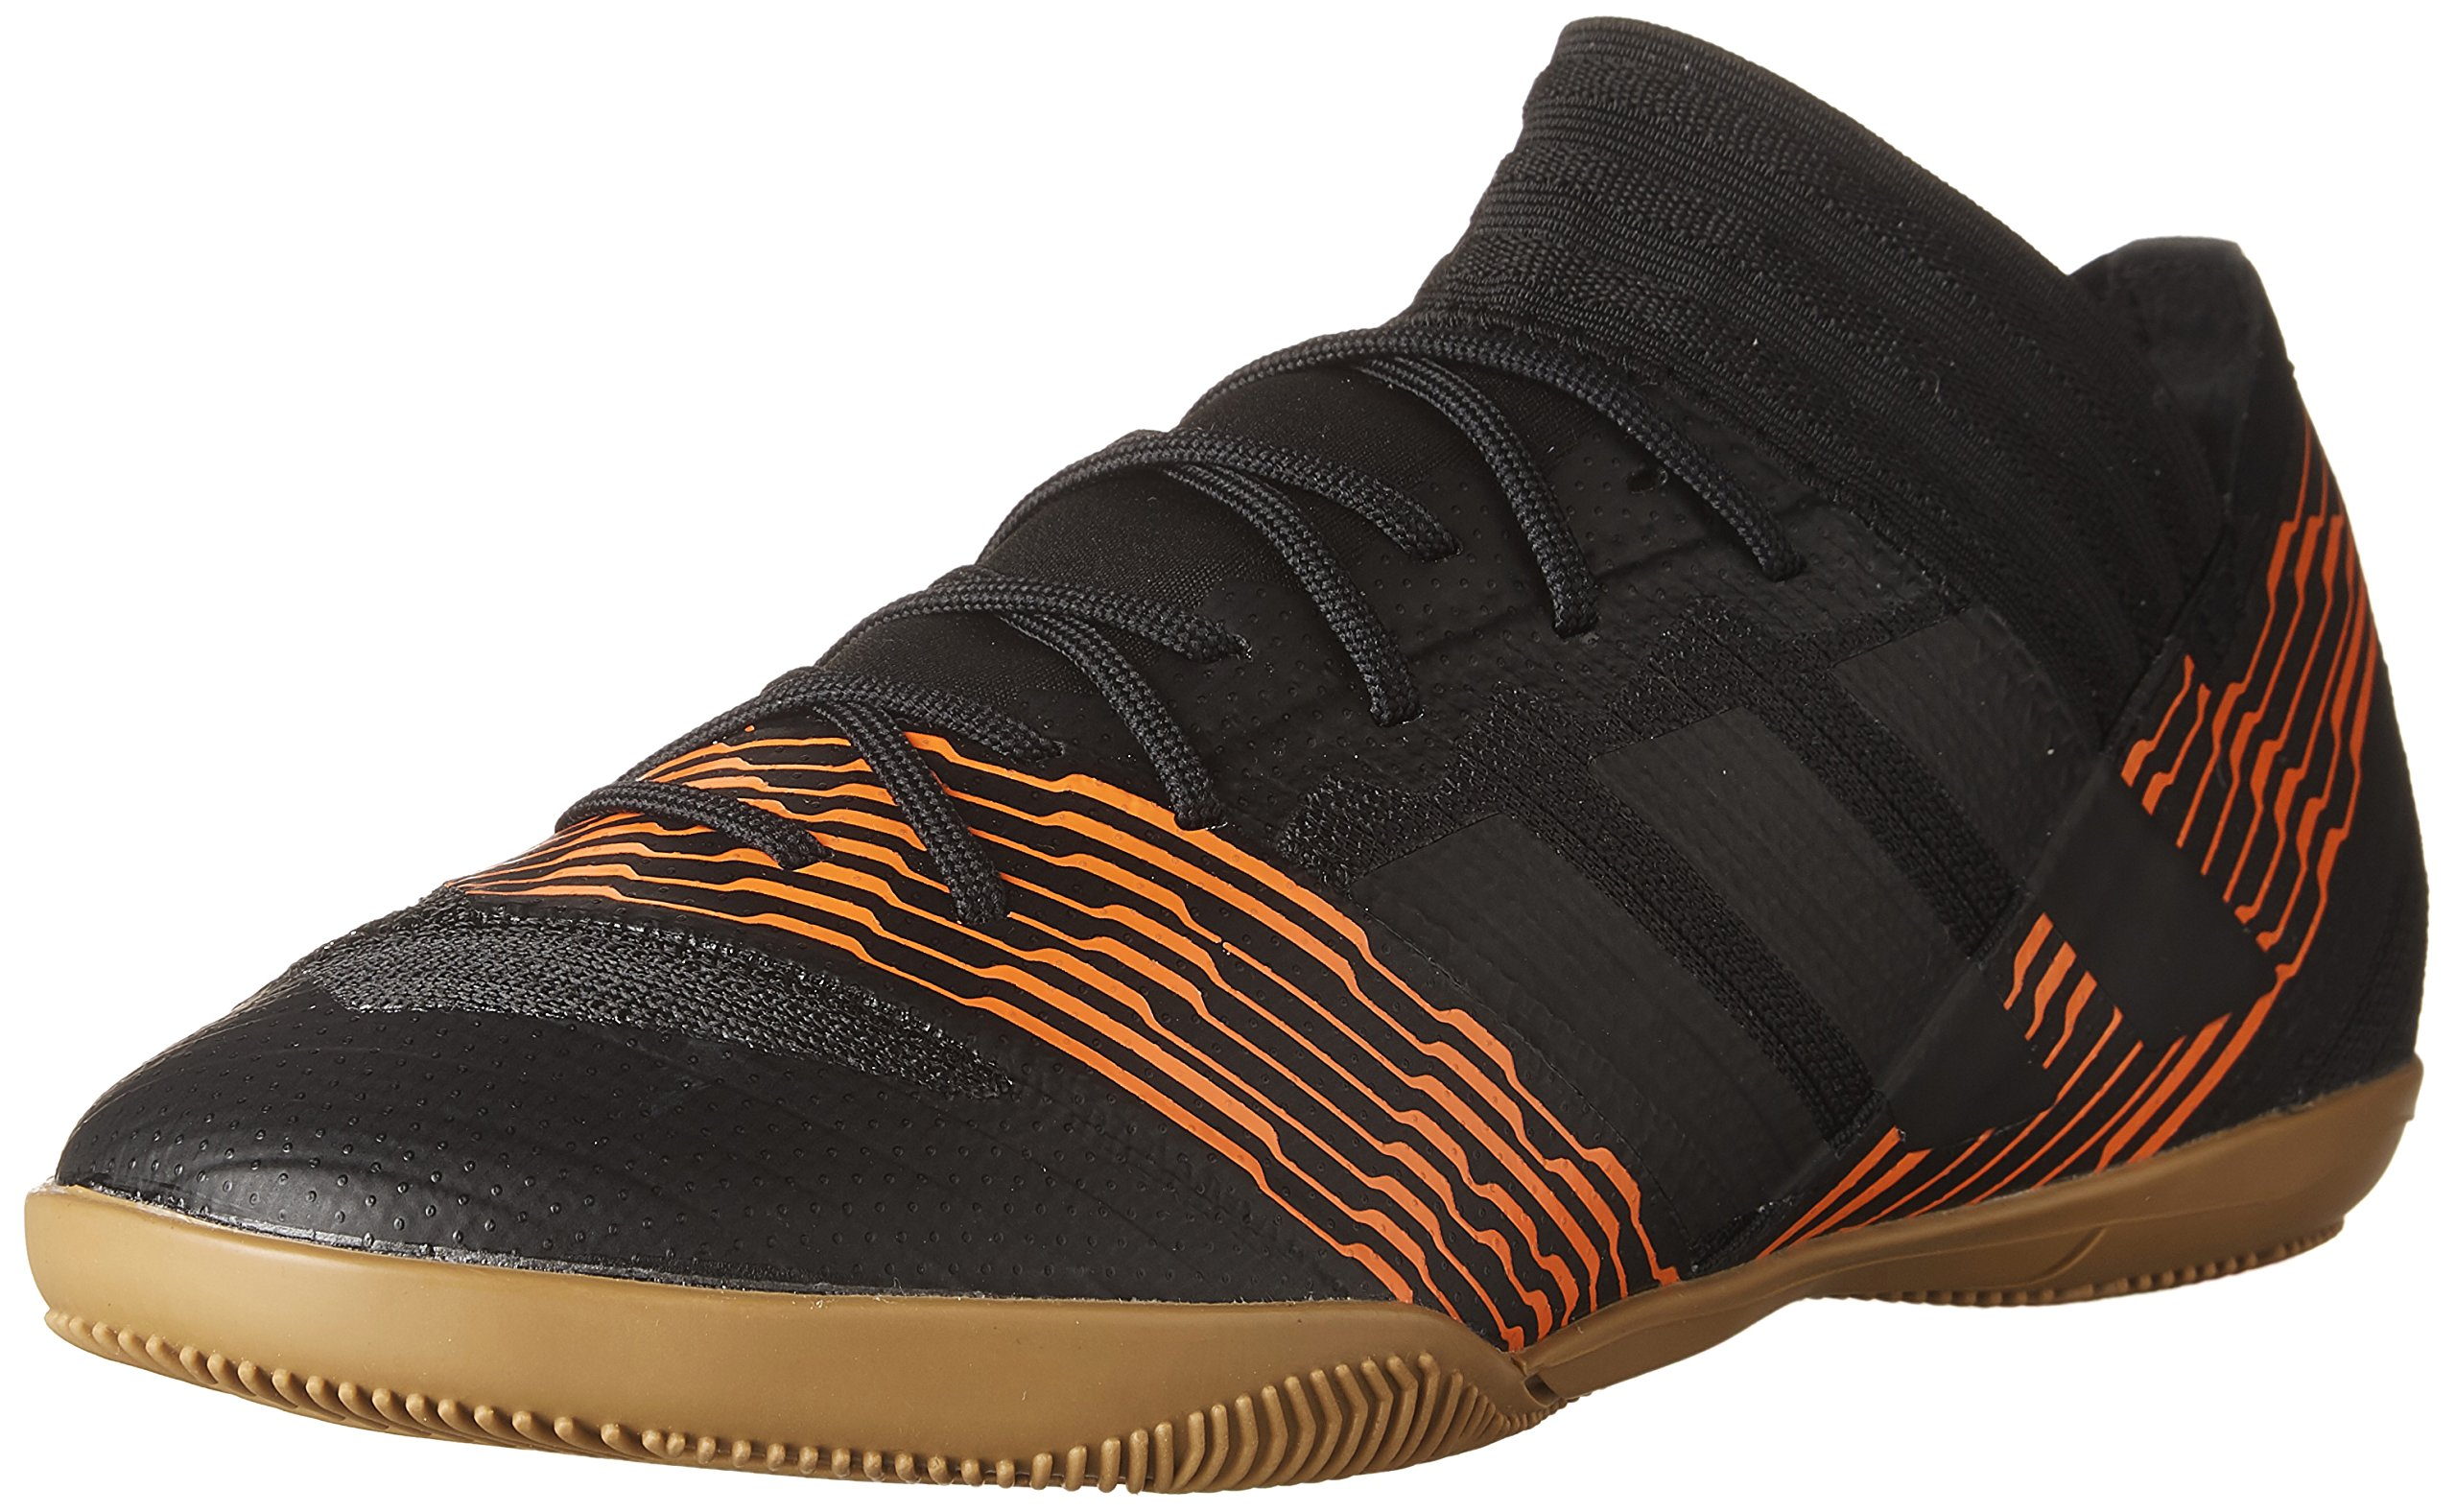 adidas Men's Nemeziz Tango 17.3 in Soccer Shoe, Core Black/Core Black/Solar Red, 13 M US